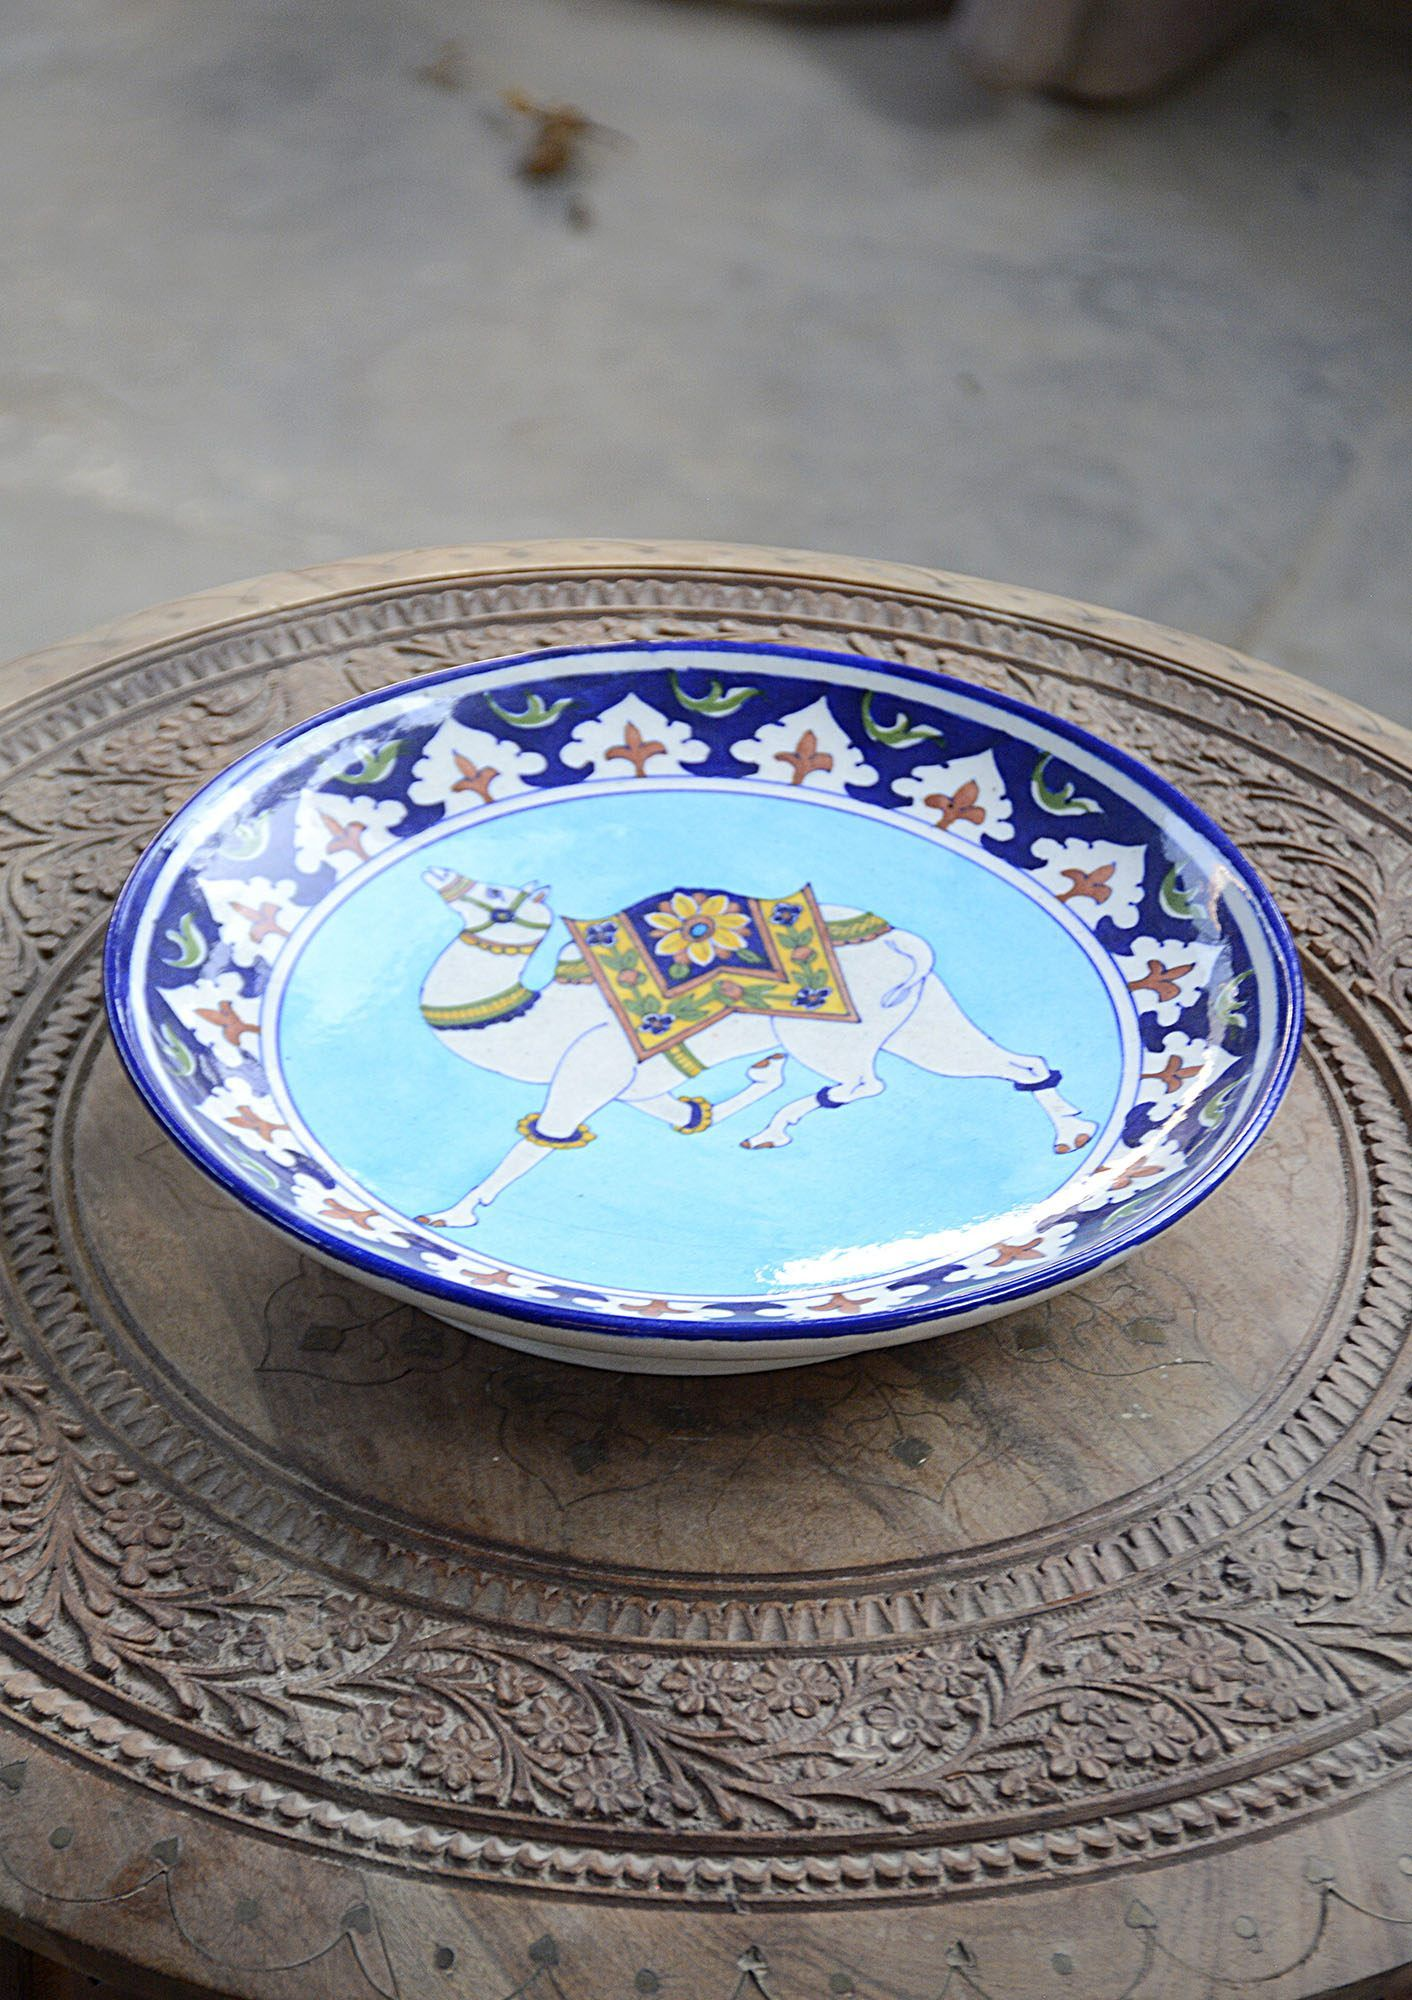 Hand Crafted Plates Dinning And Bath Bd This Handcrafted Oval Shape Decorative Plate Is Made From Ceramic This Plates Are Fi Plates Handmade Pottery Handcraft